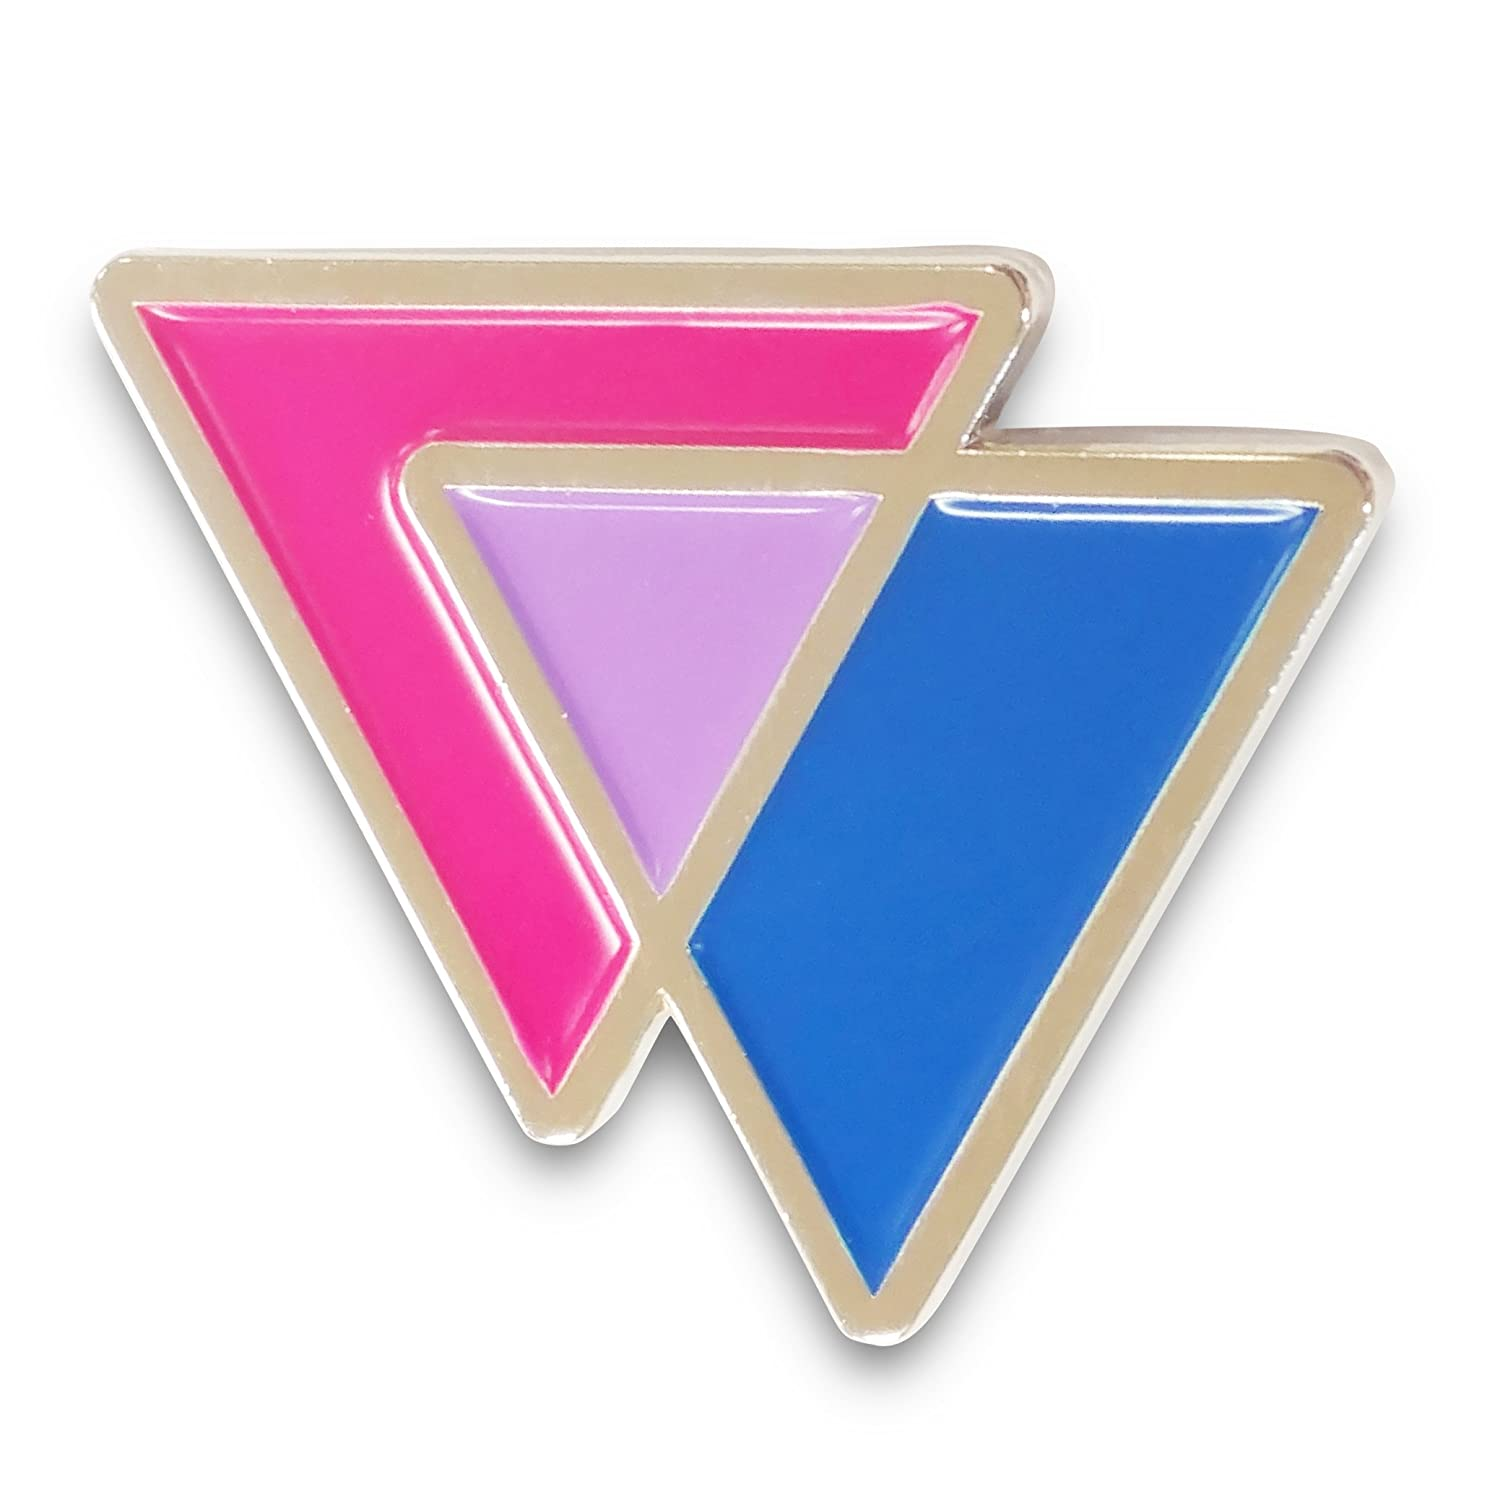 Amazon.com: Bisexual Triangles Biangles Pink Lavender Blue Enamel Pin:  Jewelry